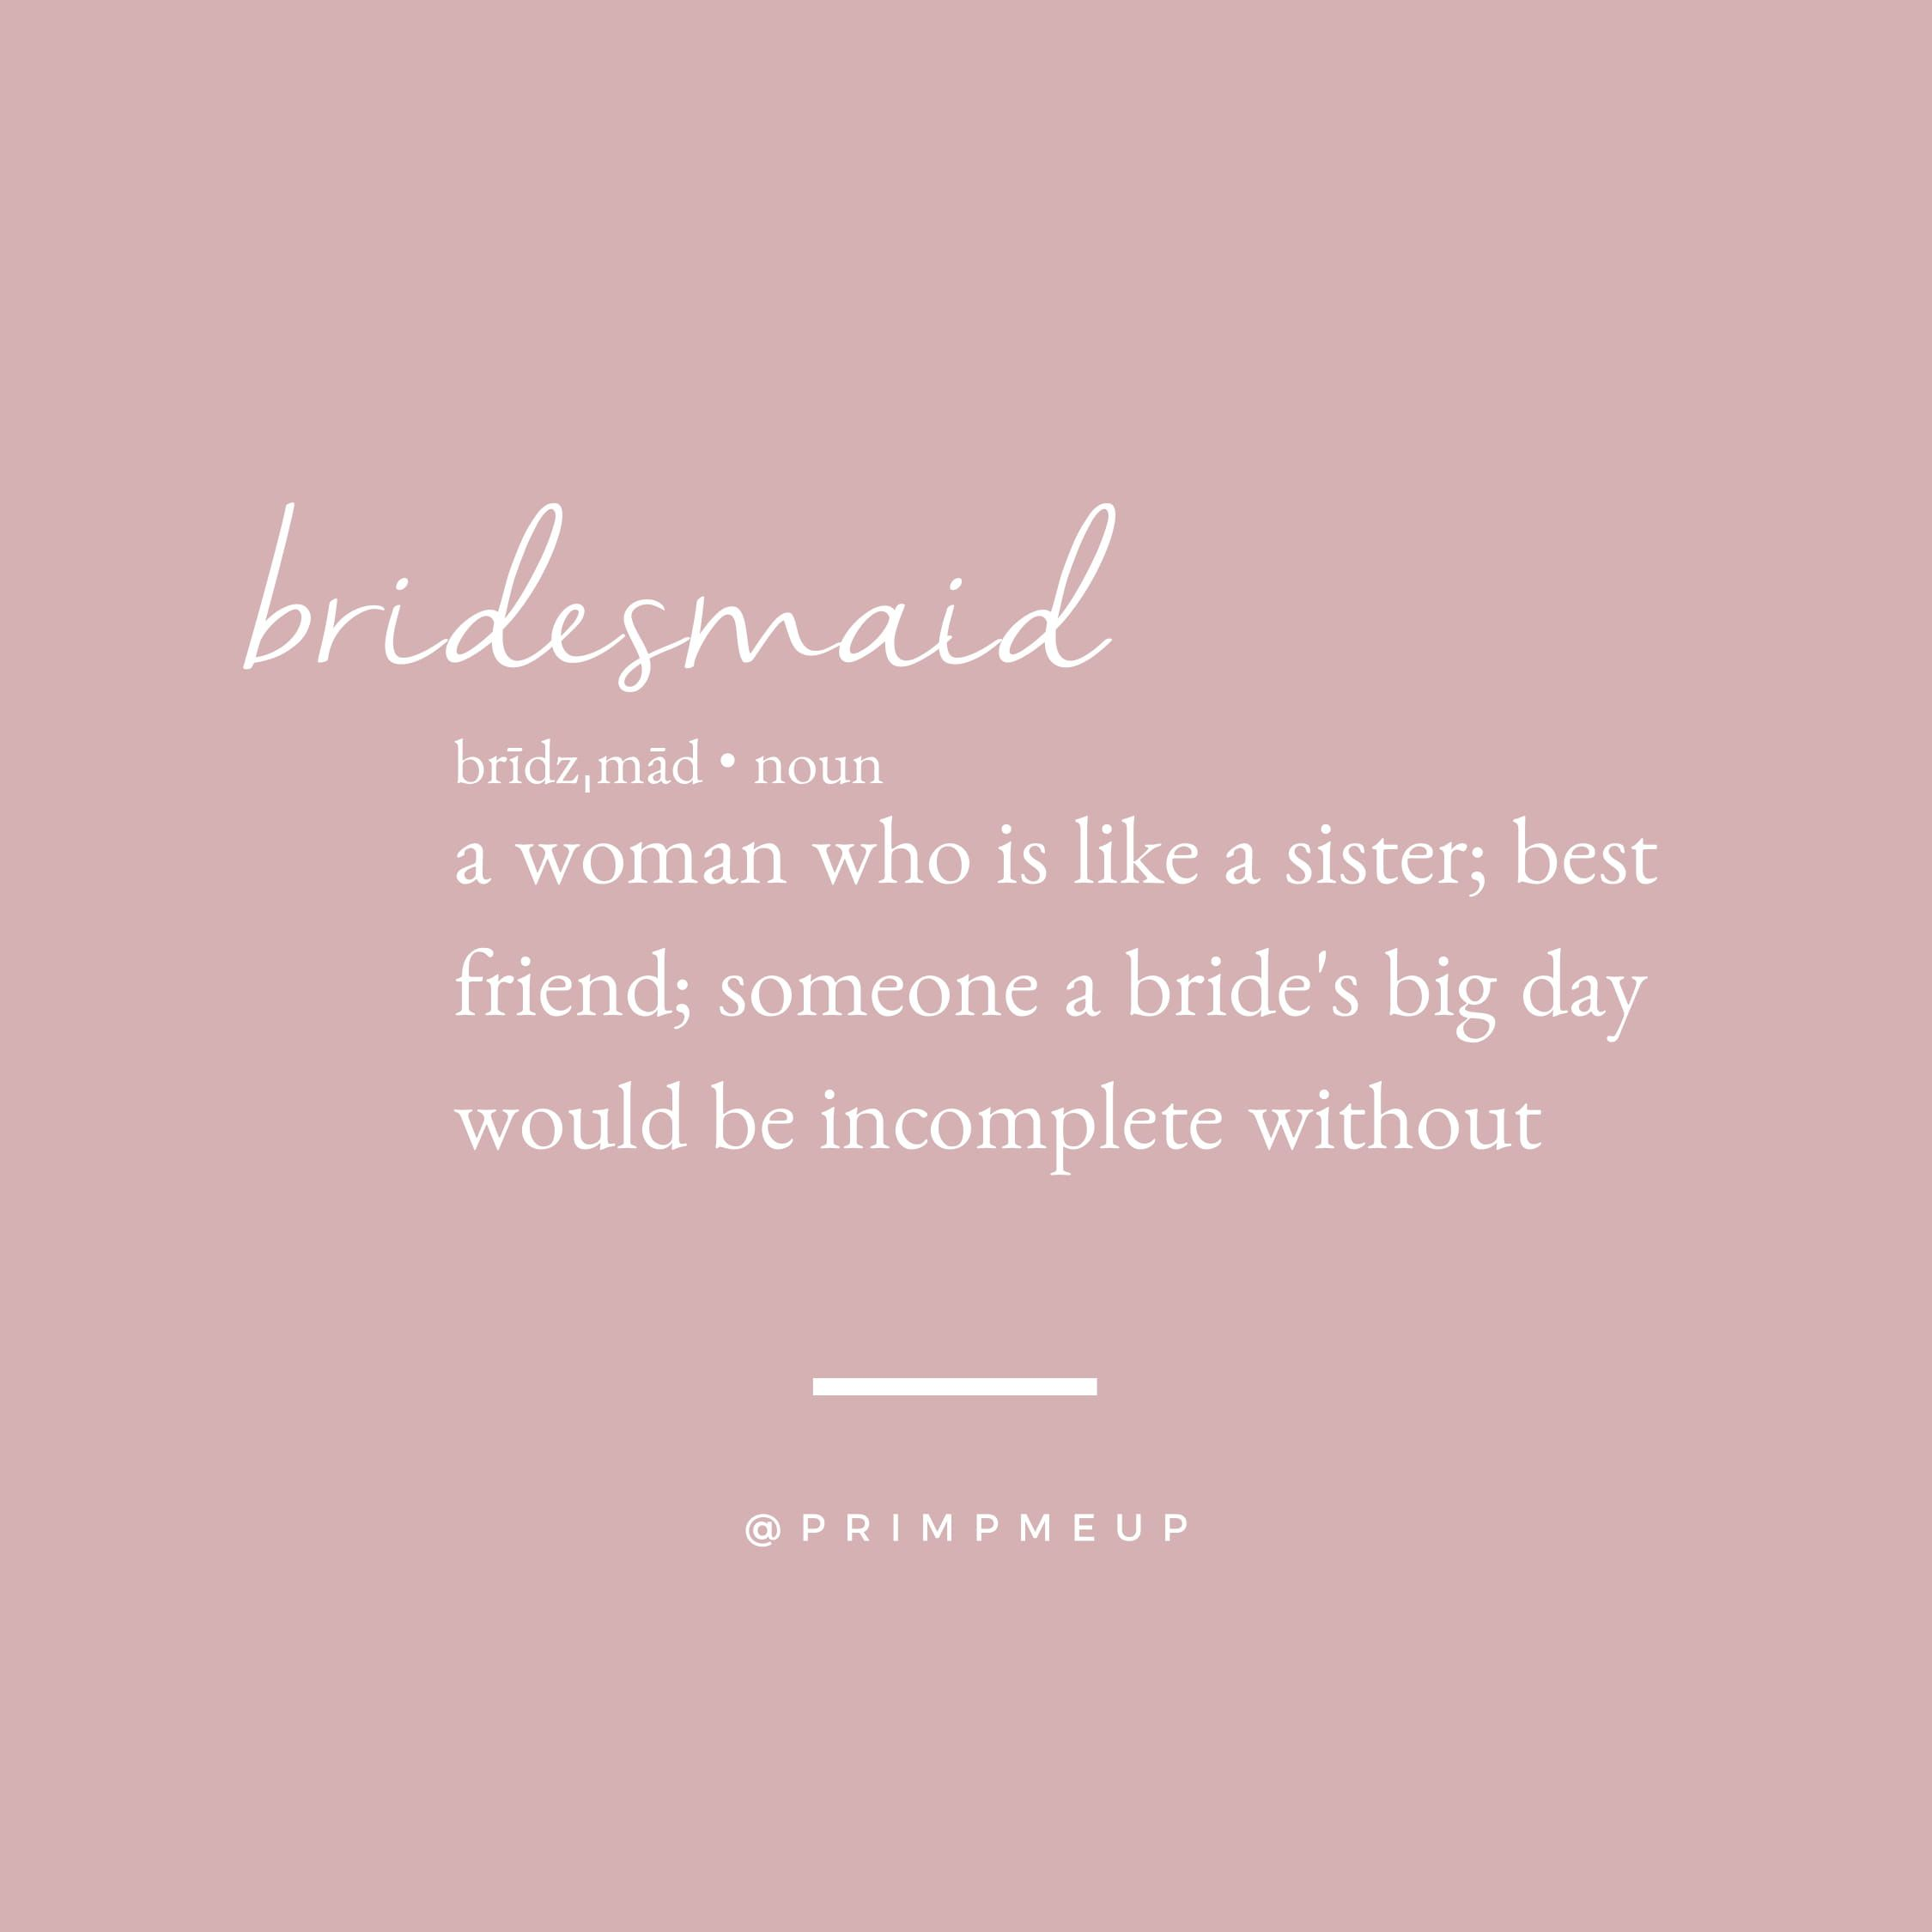 Bridesmaid: A woman who is like a sister; best friend ...